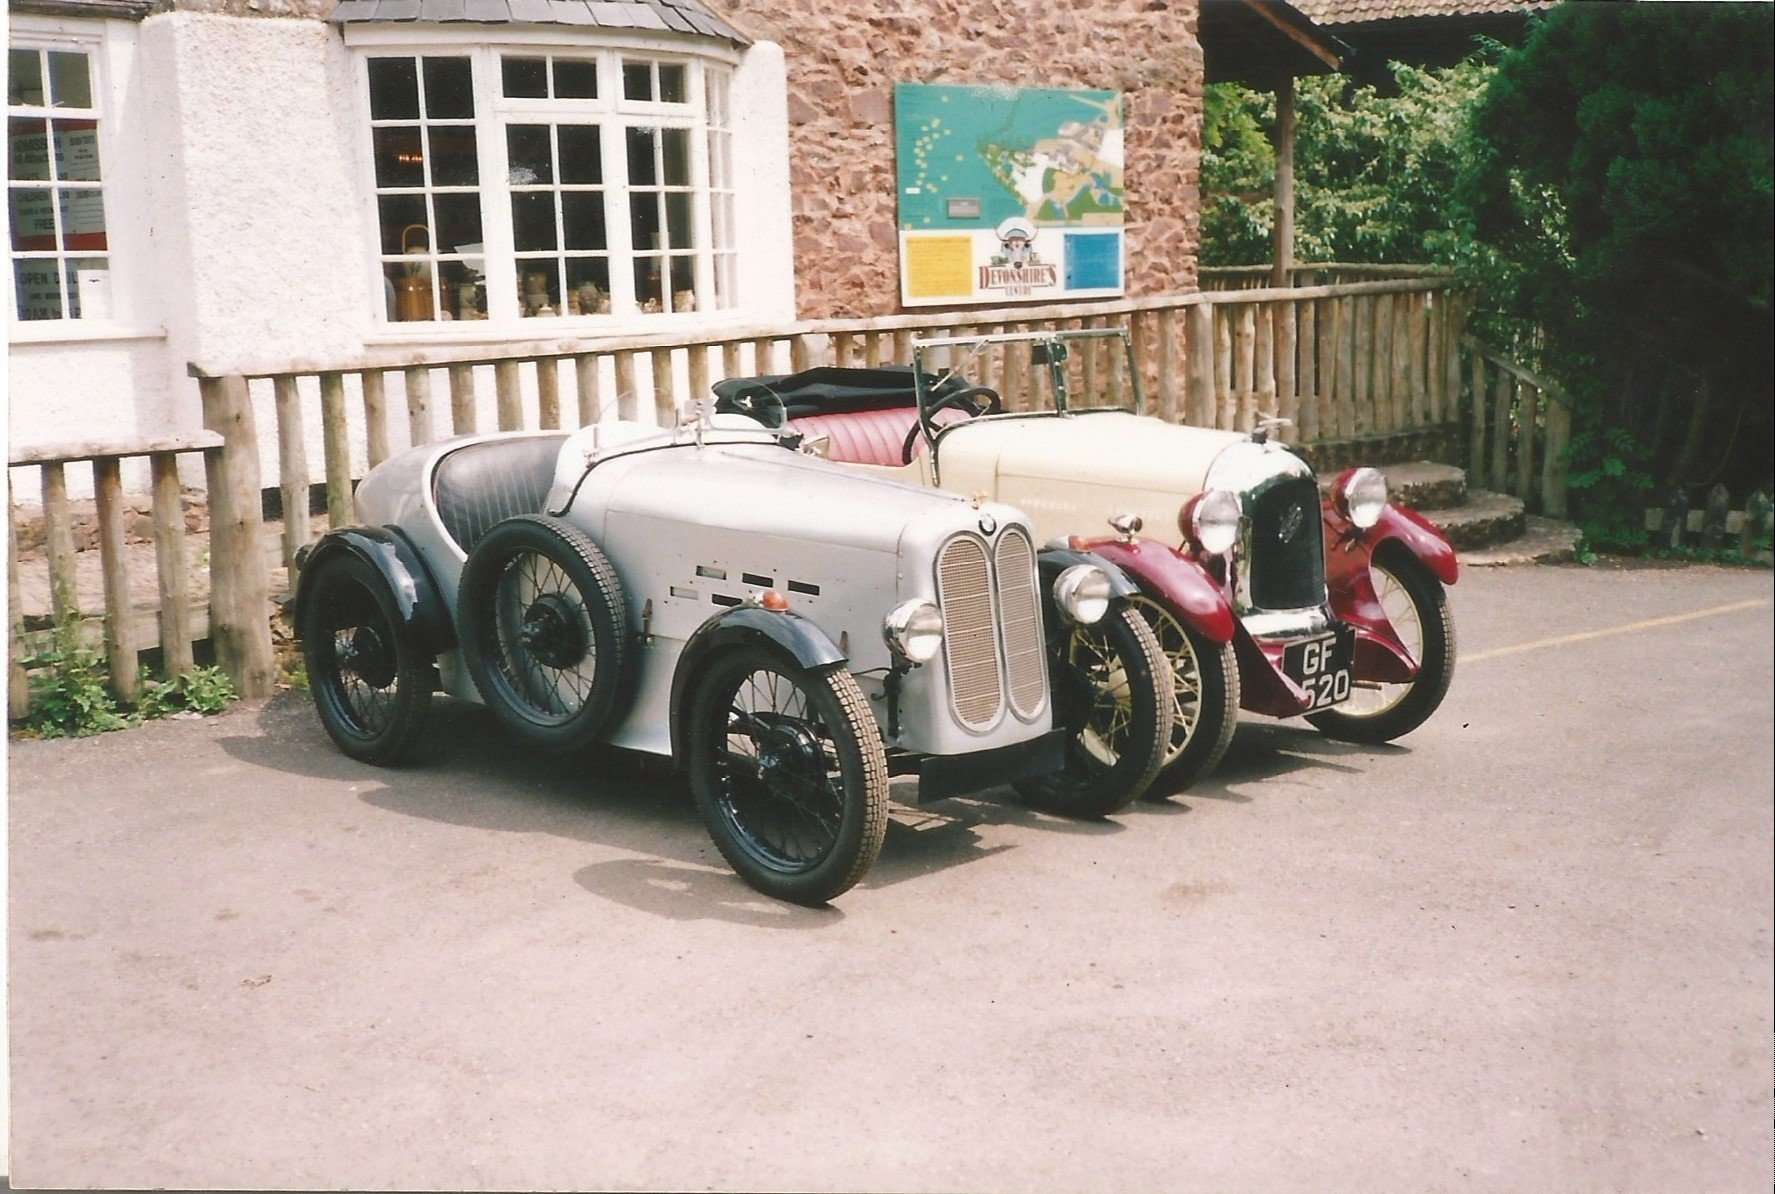 1929 BMW Austin 7 Fitted with JHLE sports600 body For Sale (picture 1 of 6)